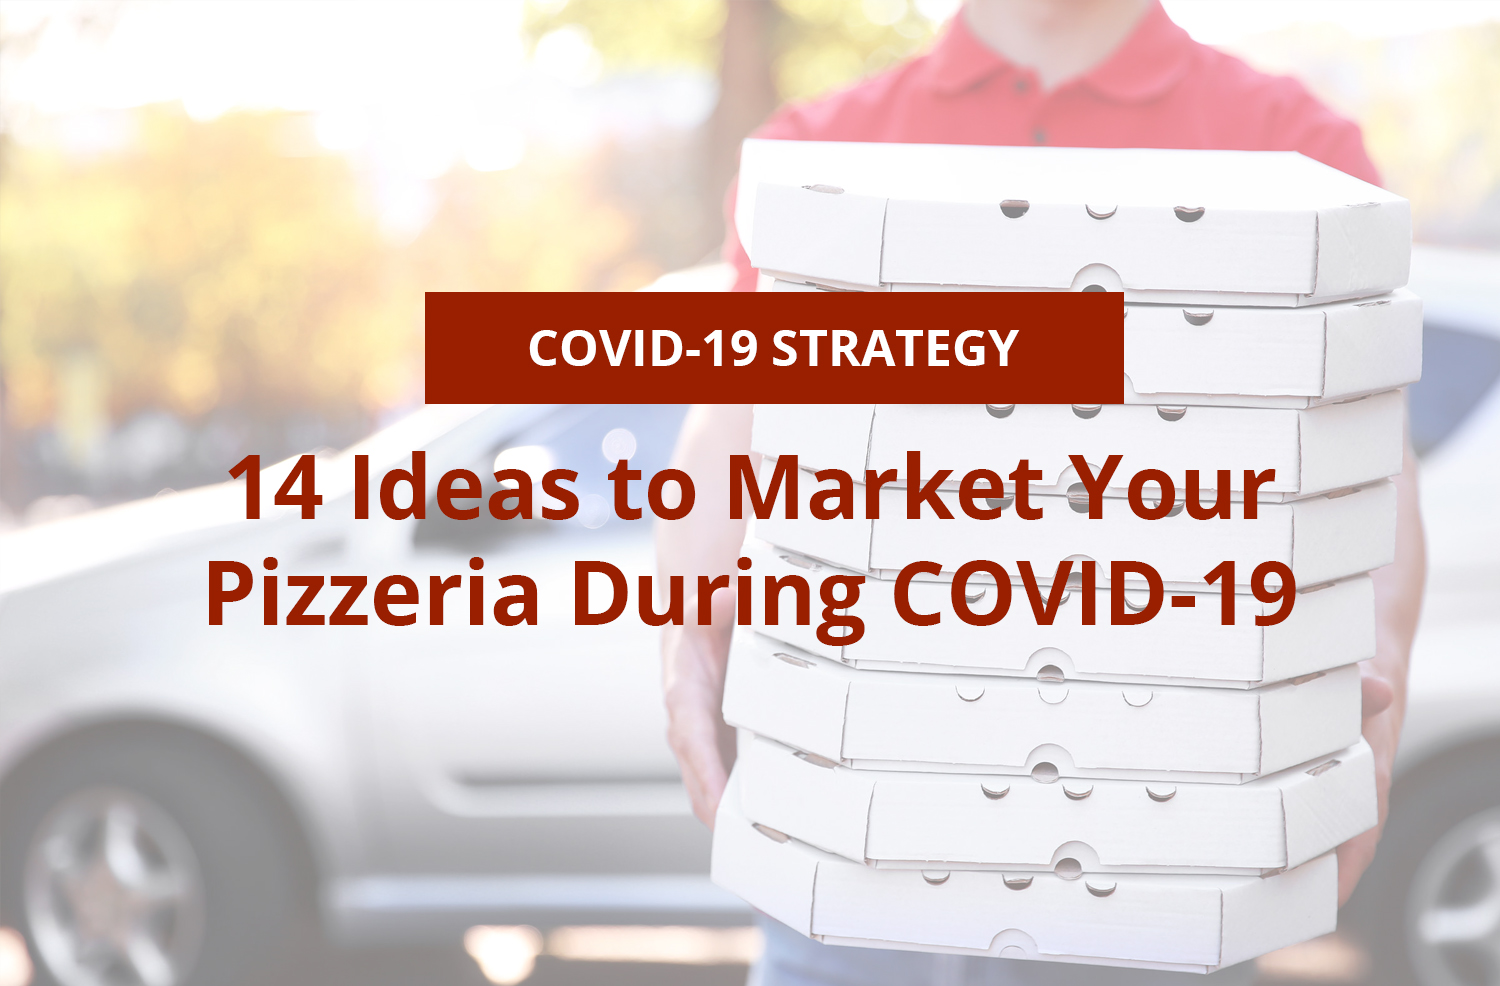 14 Ideas to Market Your Pizzeria During COVID-19